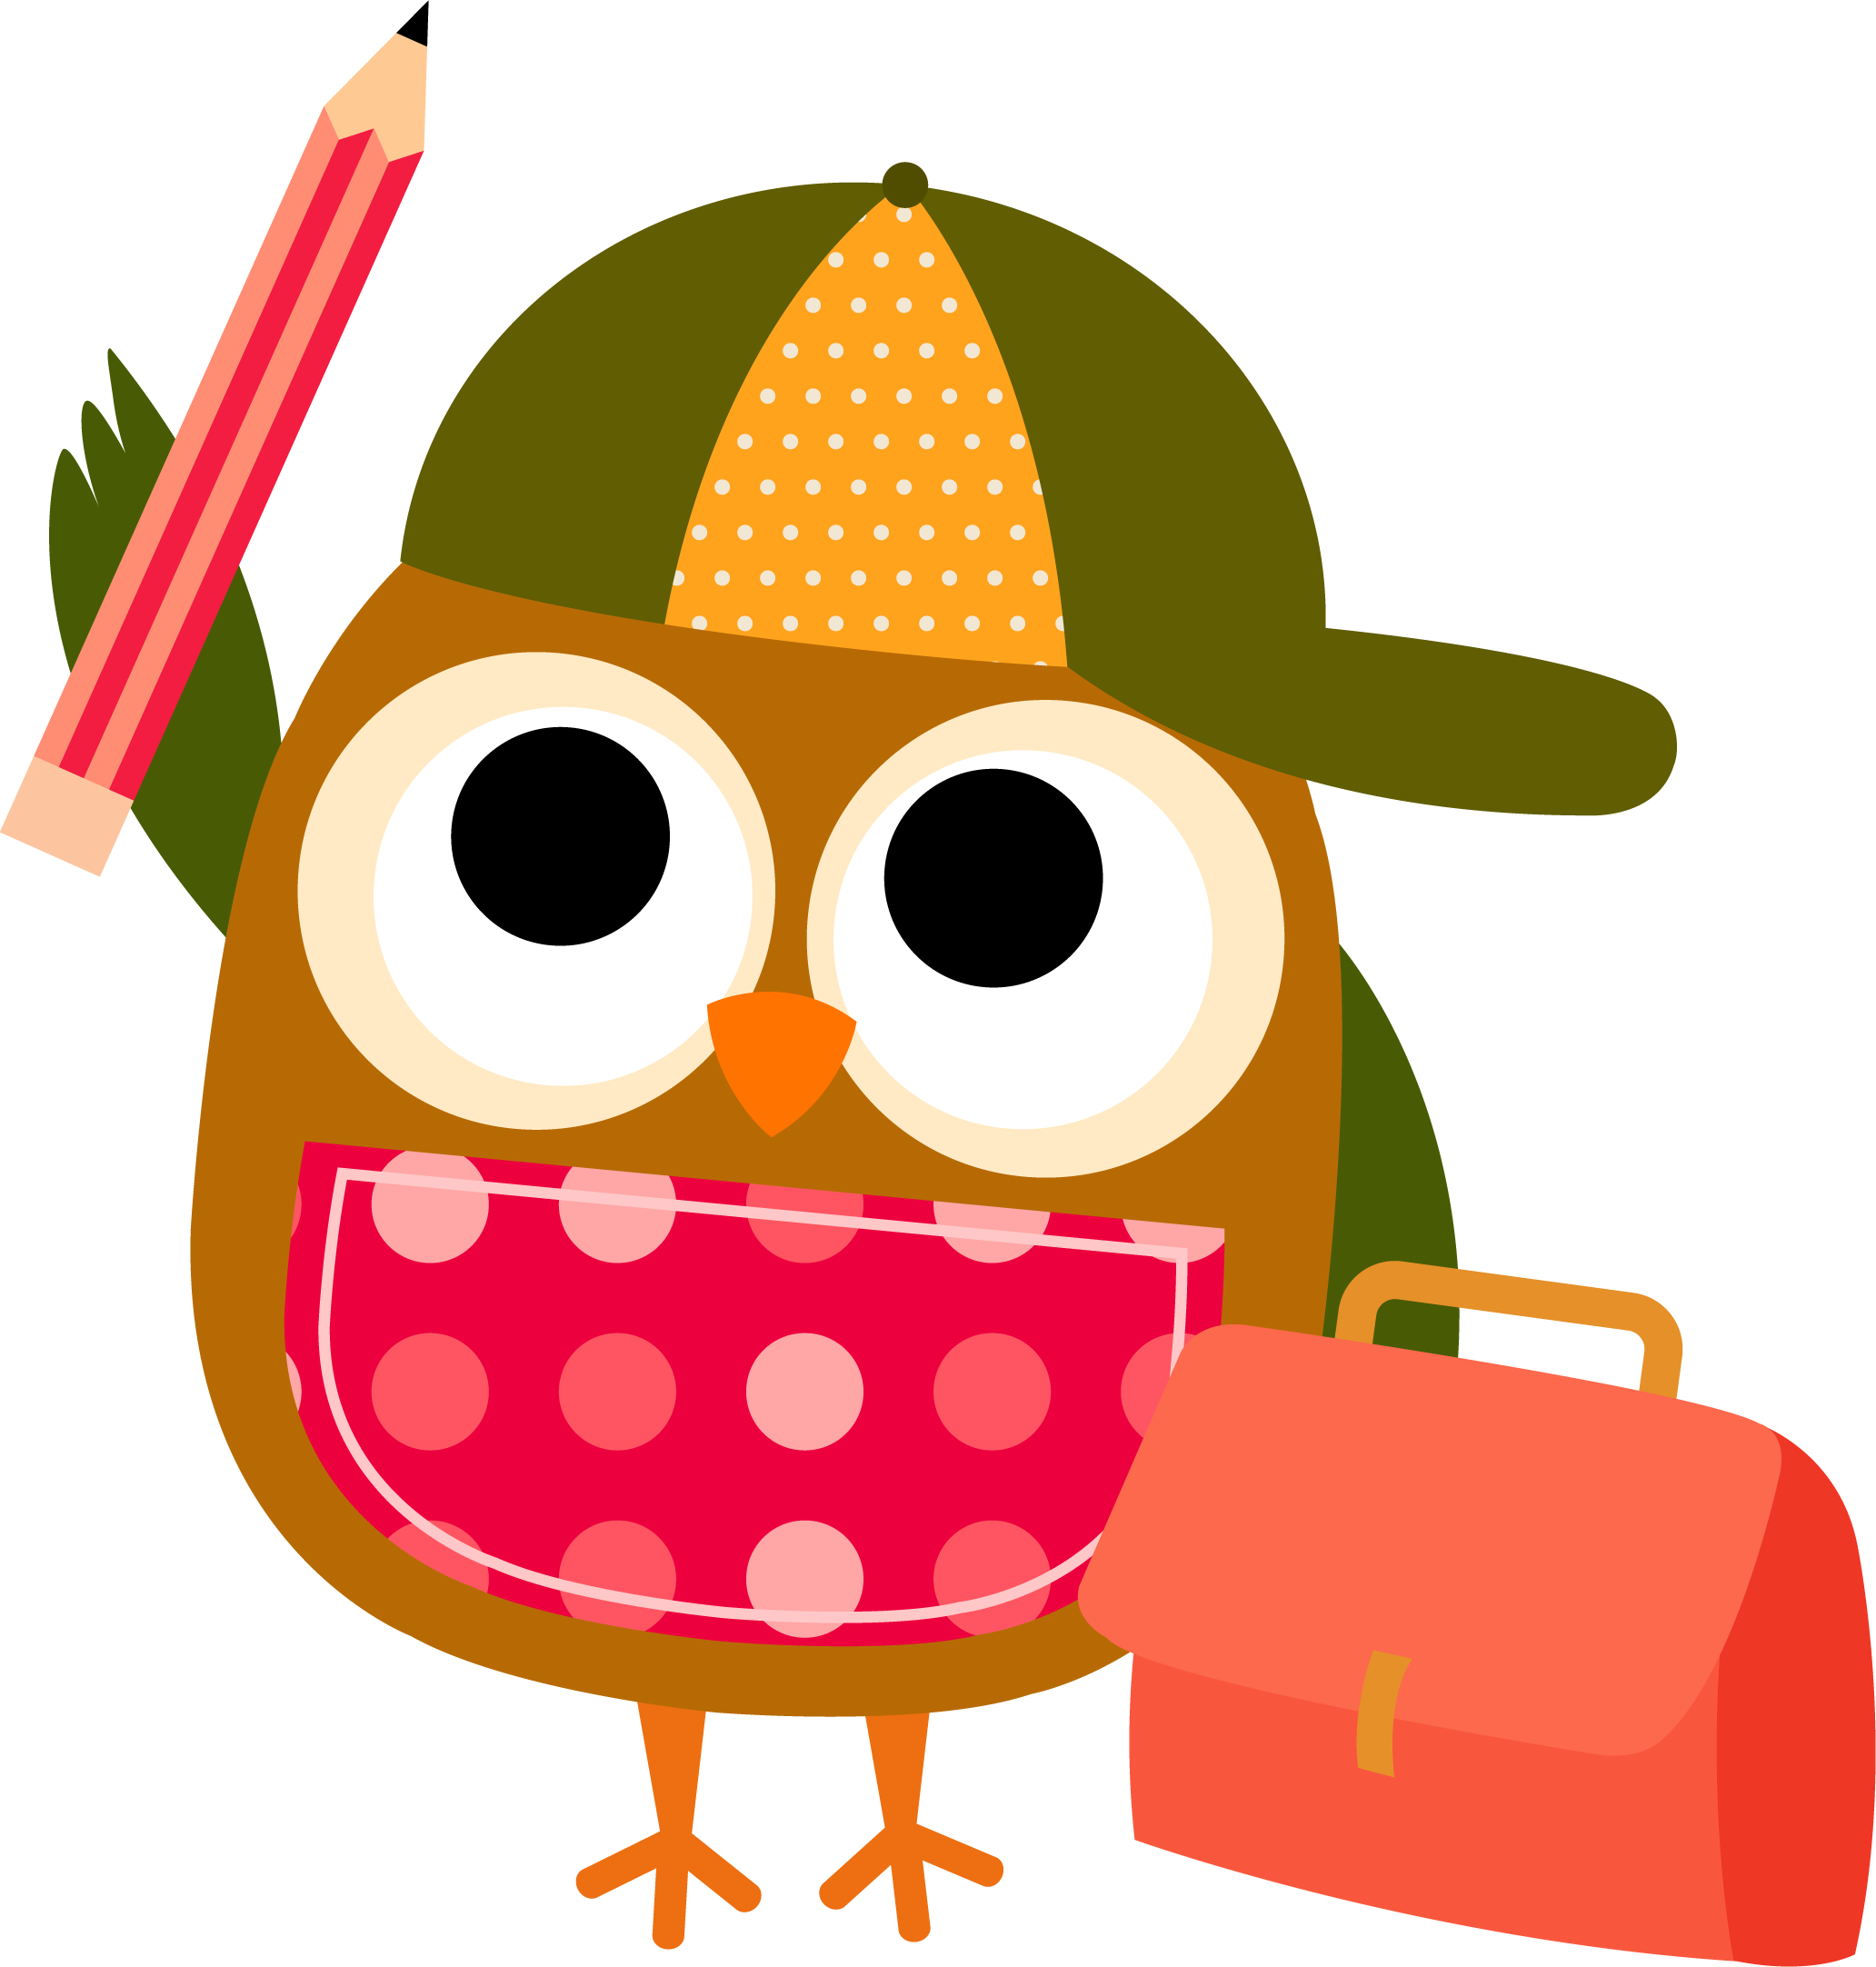 Handwriting clipart news writer. Consultant teacher ms yager